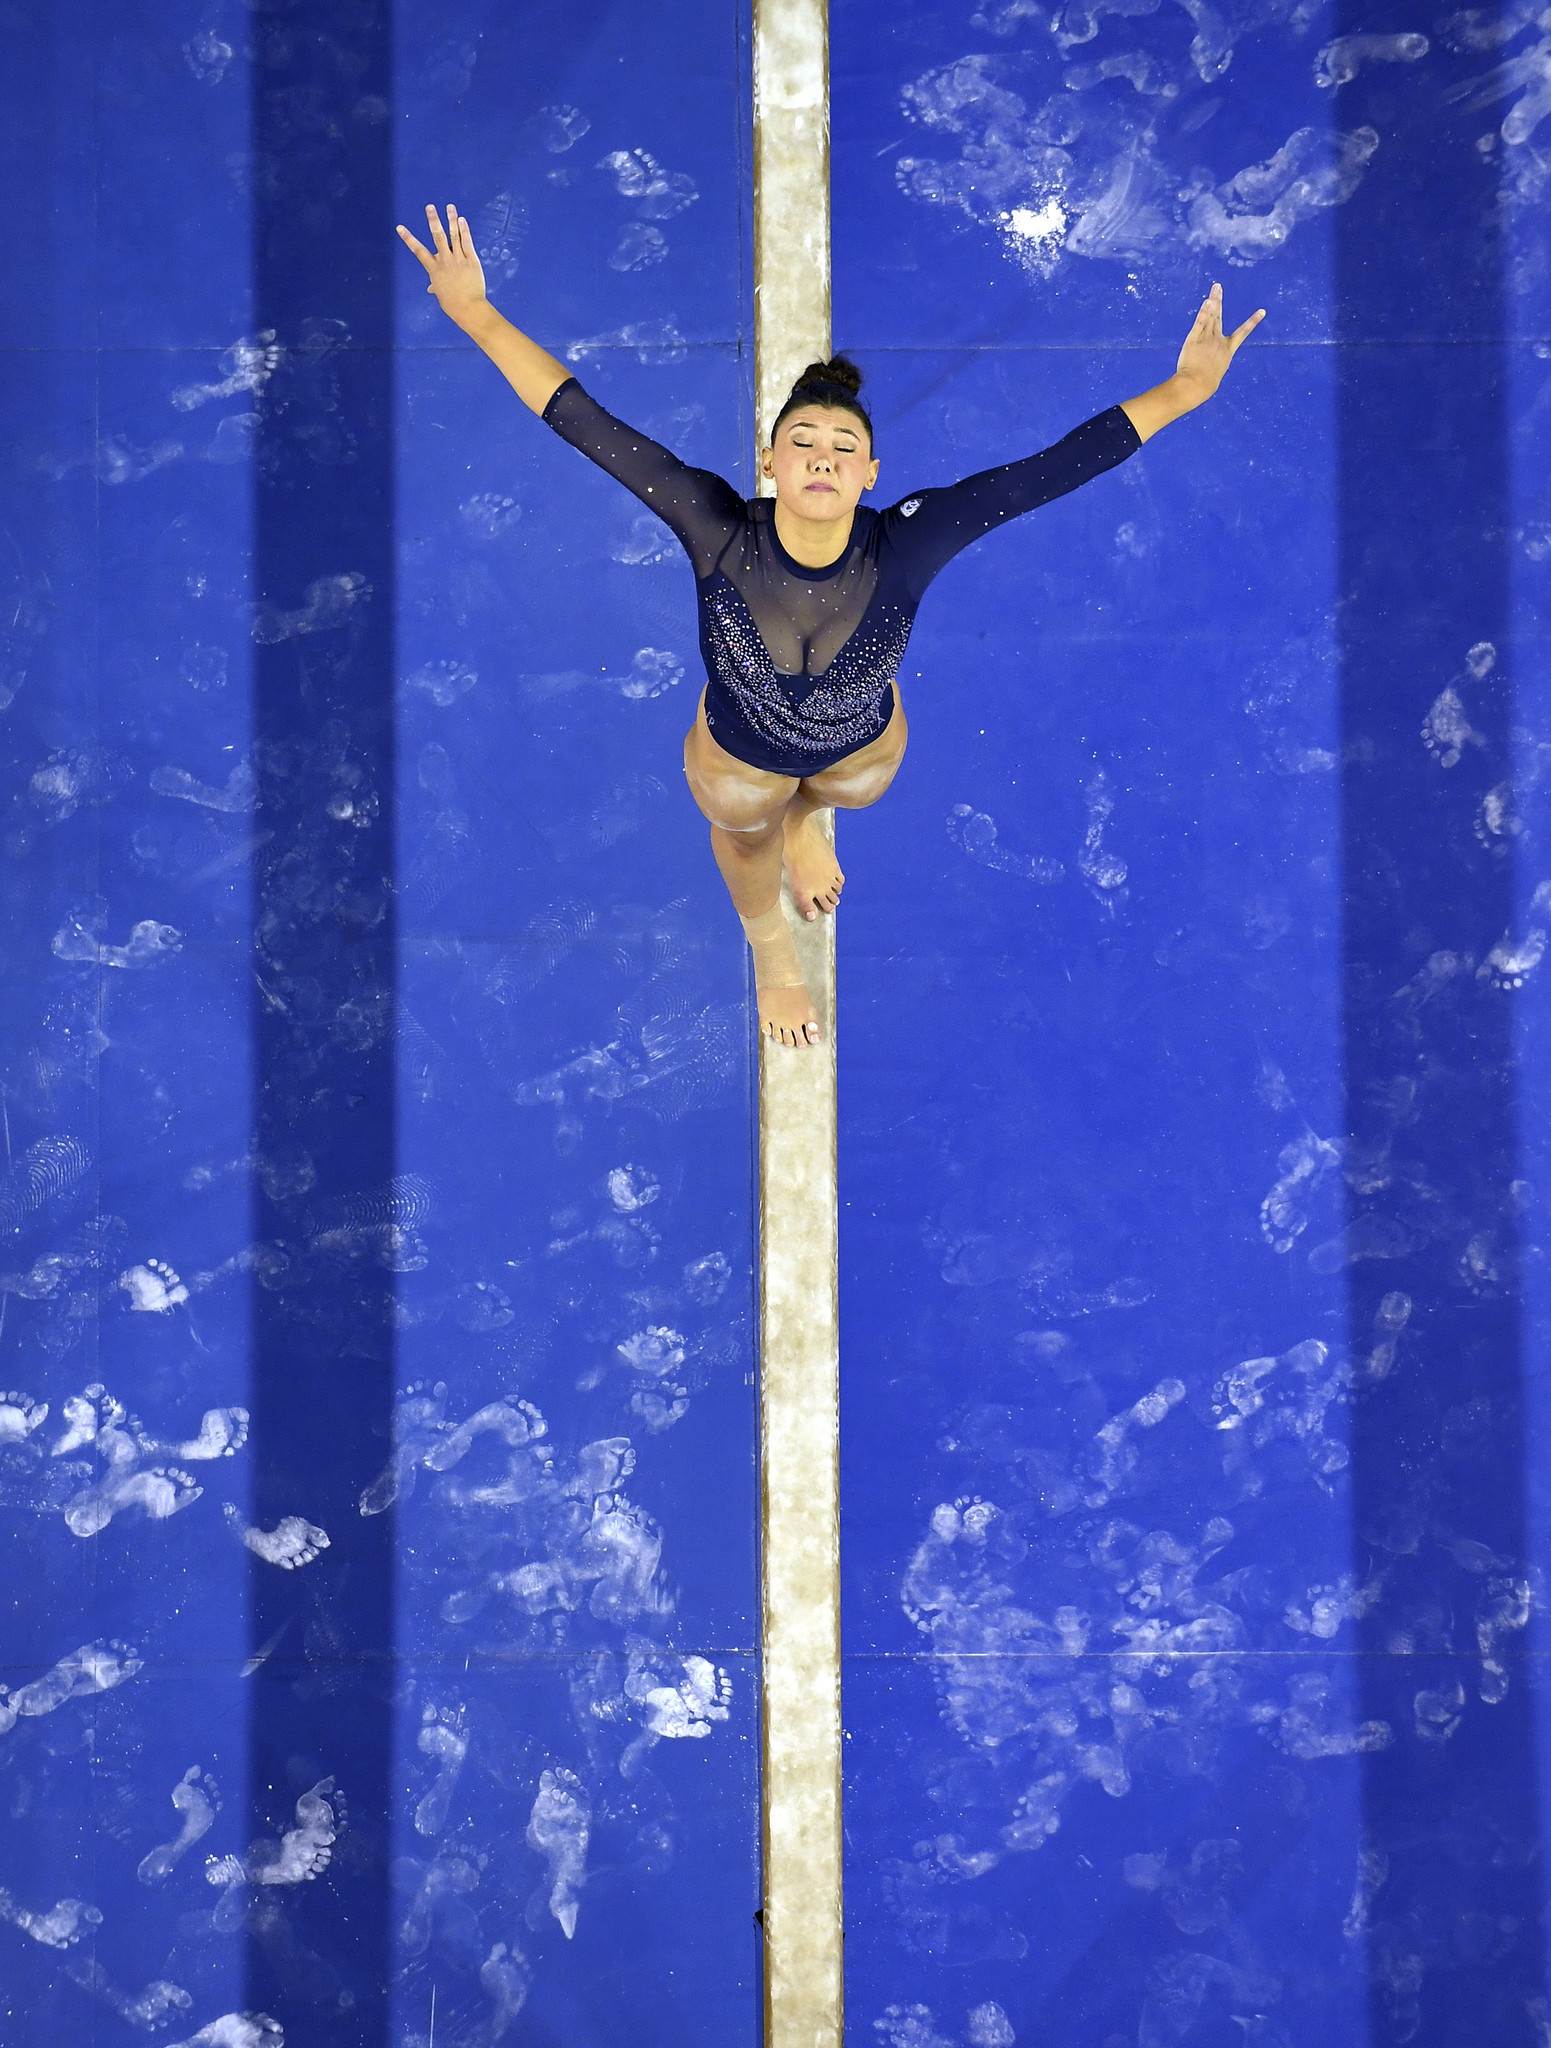 UCLA gymnast Kyla Ross competes on the beam at Pauley Pavilion.